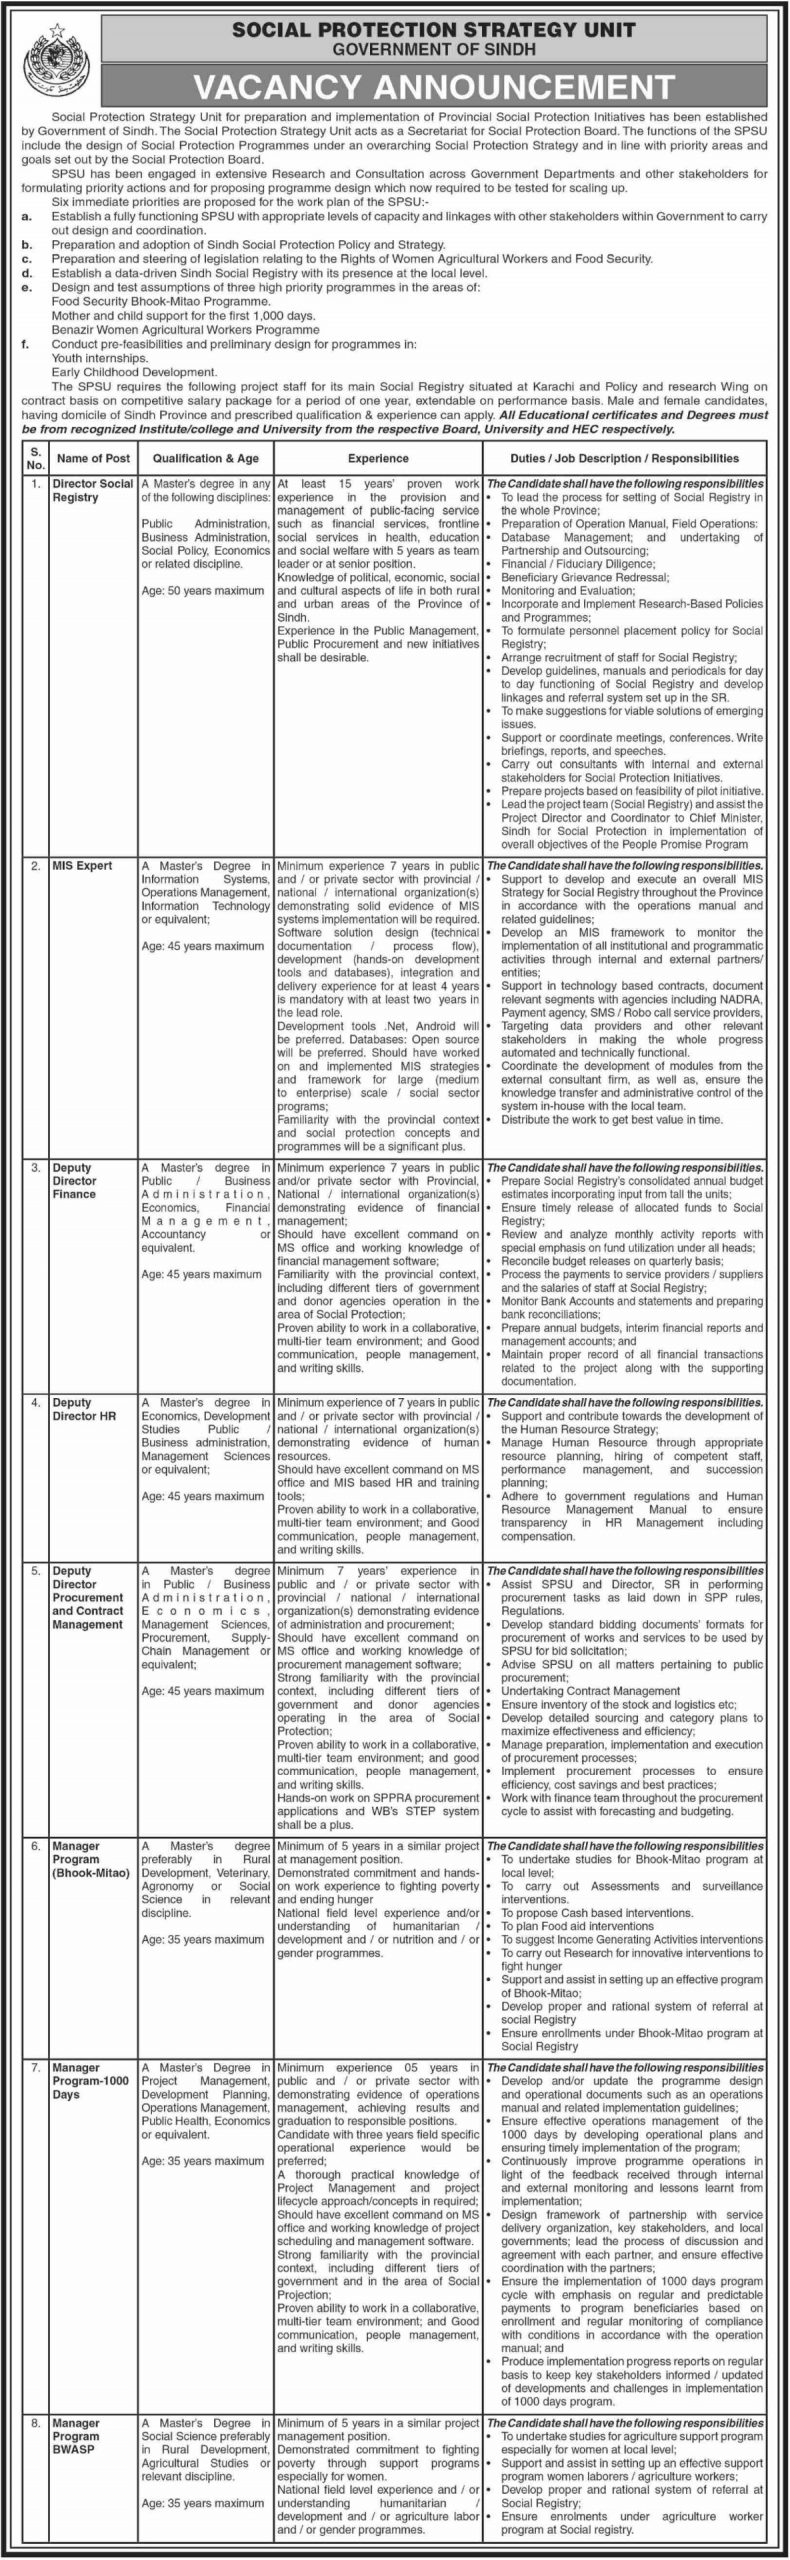 Special Protection Strategy Unit Karachi Jobs 2020 Government of Sindh